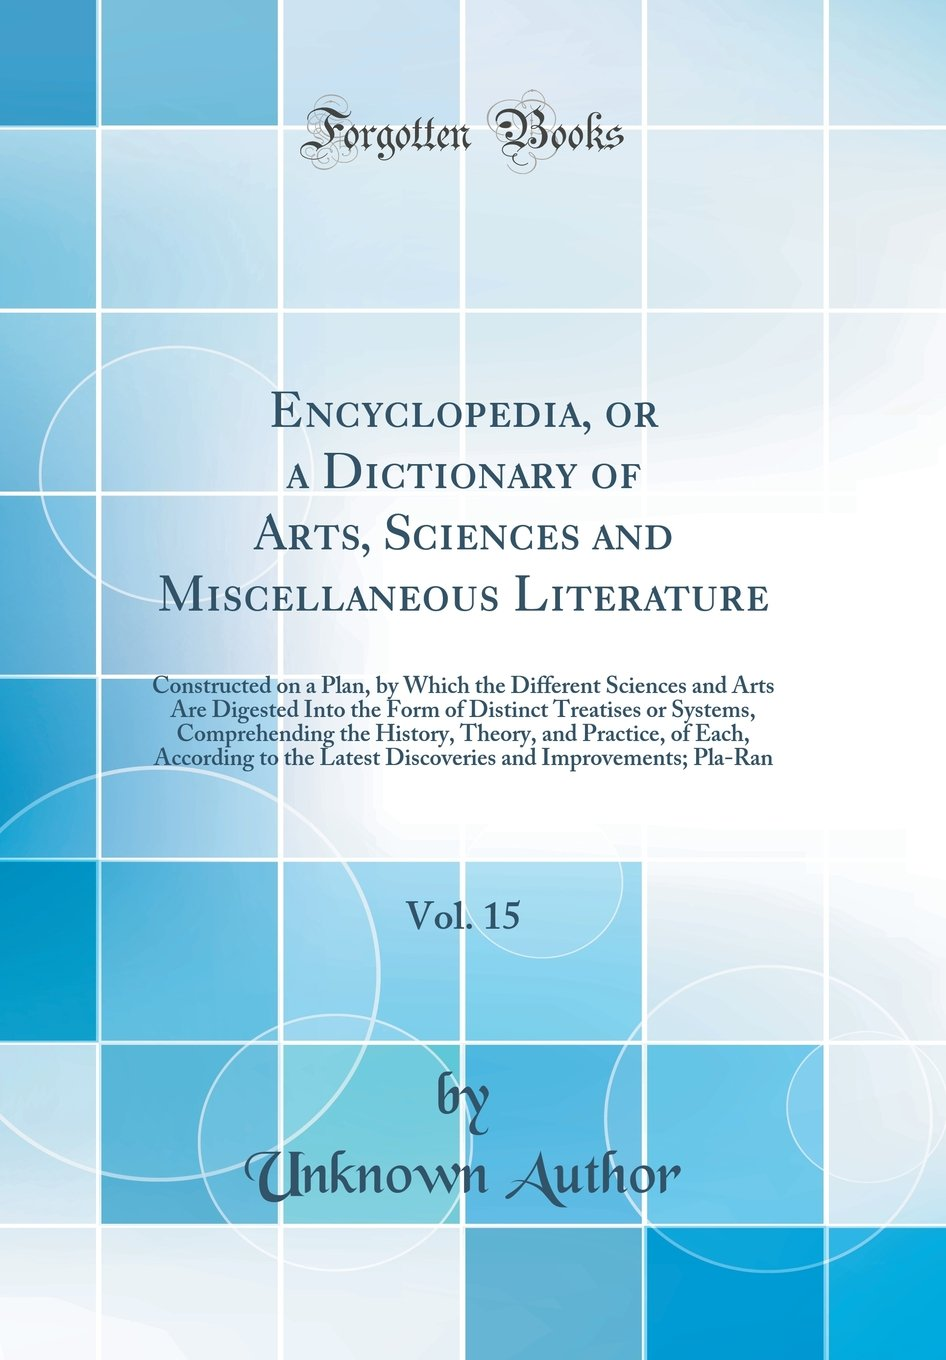 Read Online Encyclopedia, or a Dictionary of Arts, Sciences and Miscellaneous Literature, Vol. 15: Constructed on a Plan, by Which the Different Sciences and Arts ... Comprehending the History, Theory, and Prac ebook